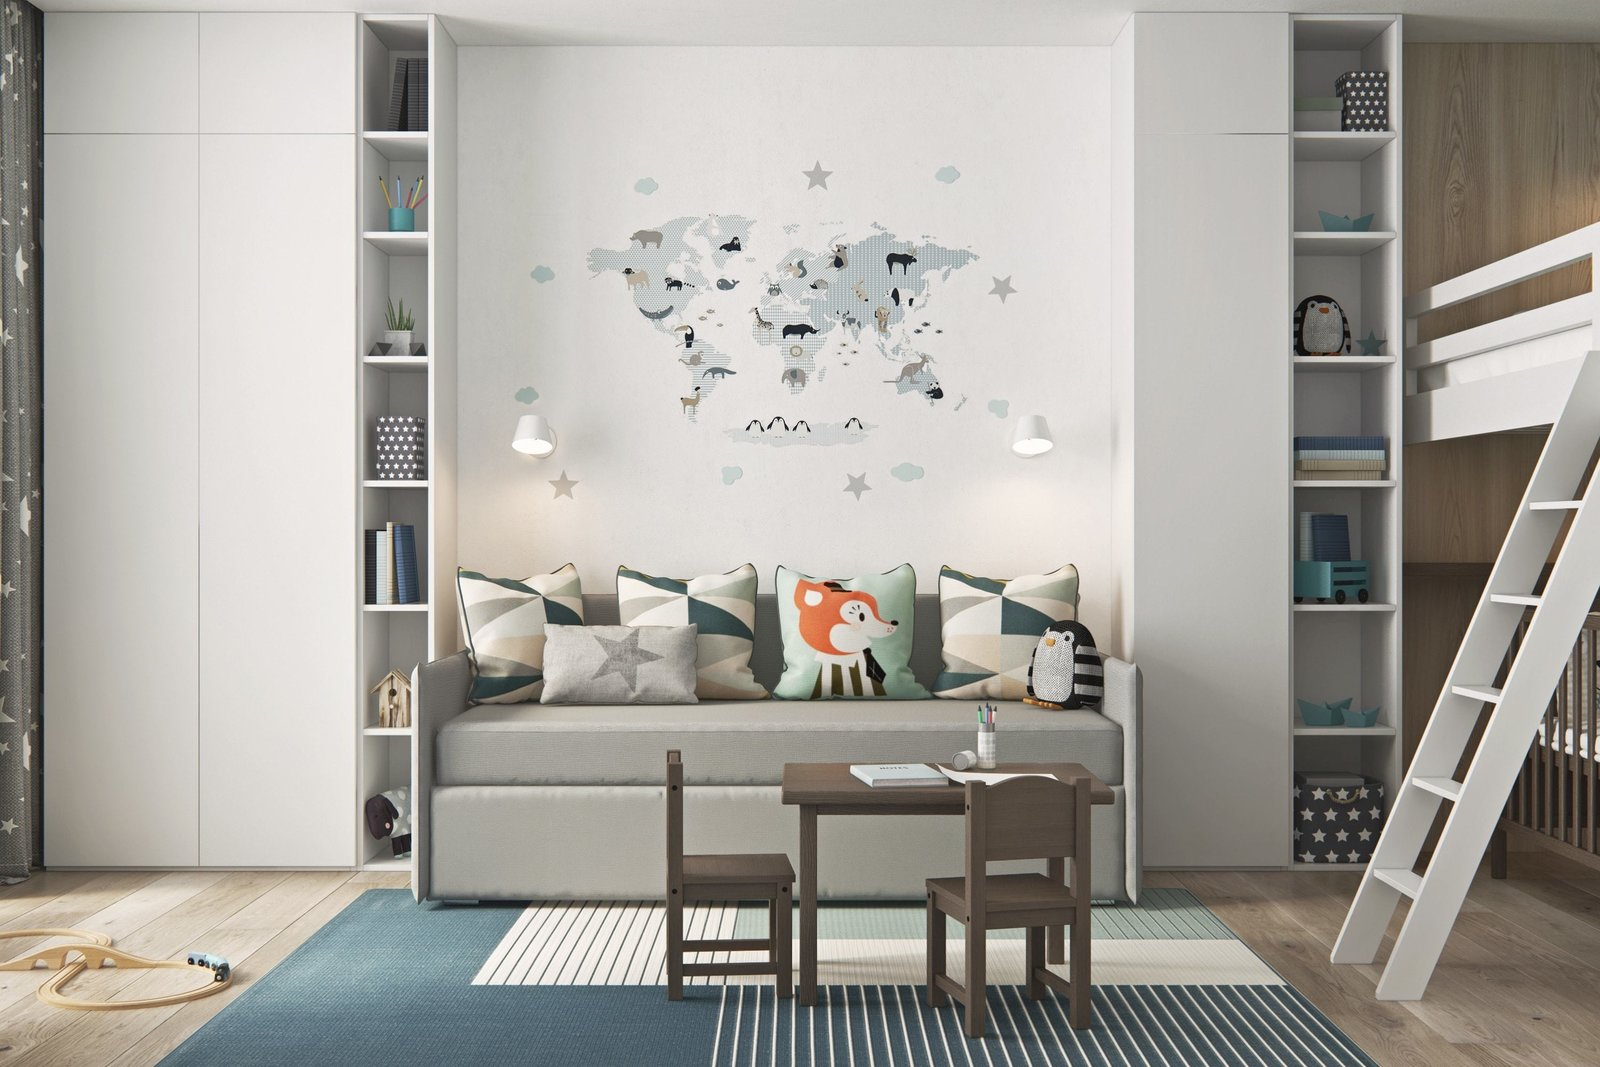 Kids Room, Bench, and Chair  Interior Design Project in Contemporary Style by Geometrium